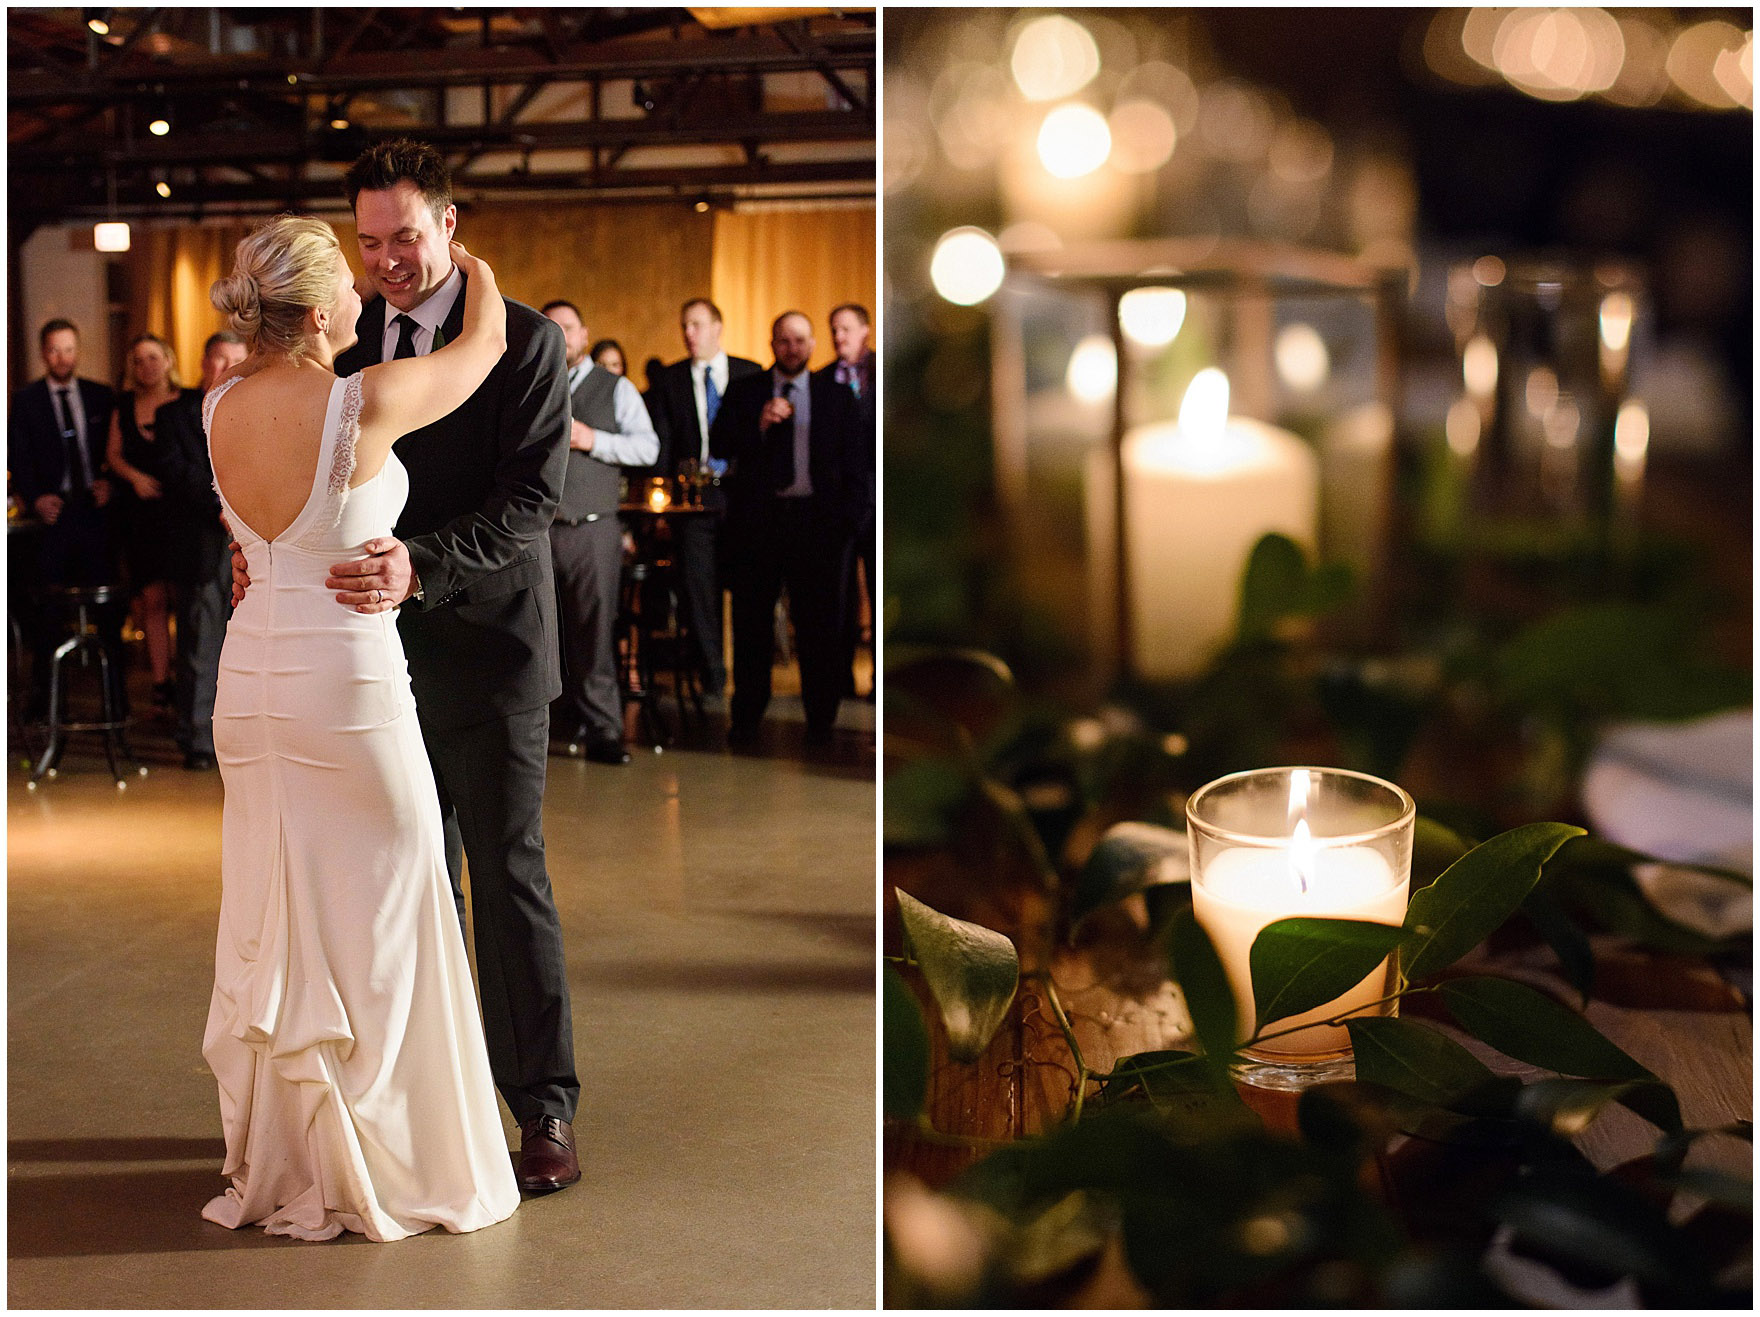 A newlywed couple shares their first dance at an Ovation Chicago wedding.